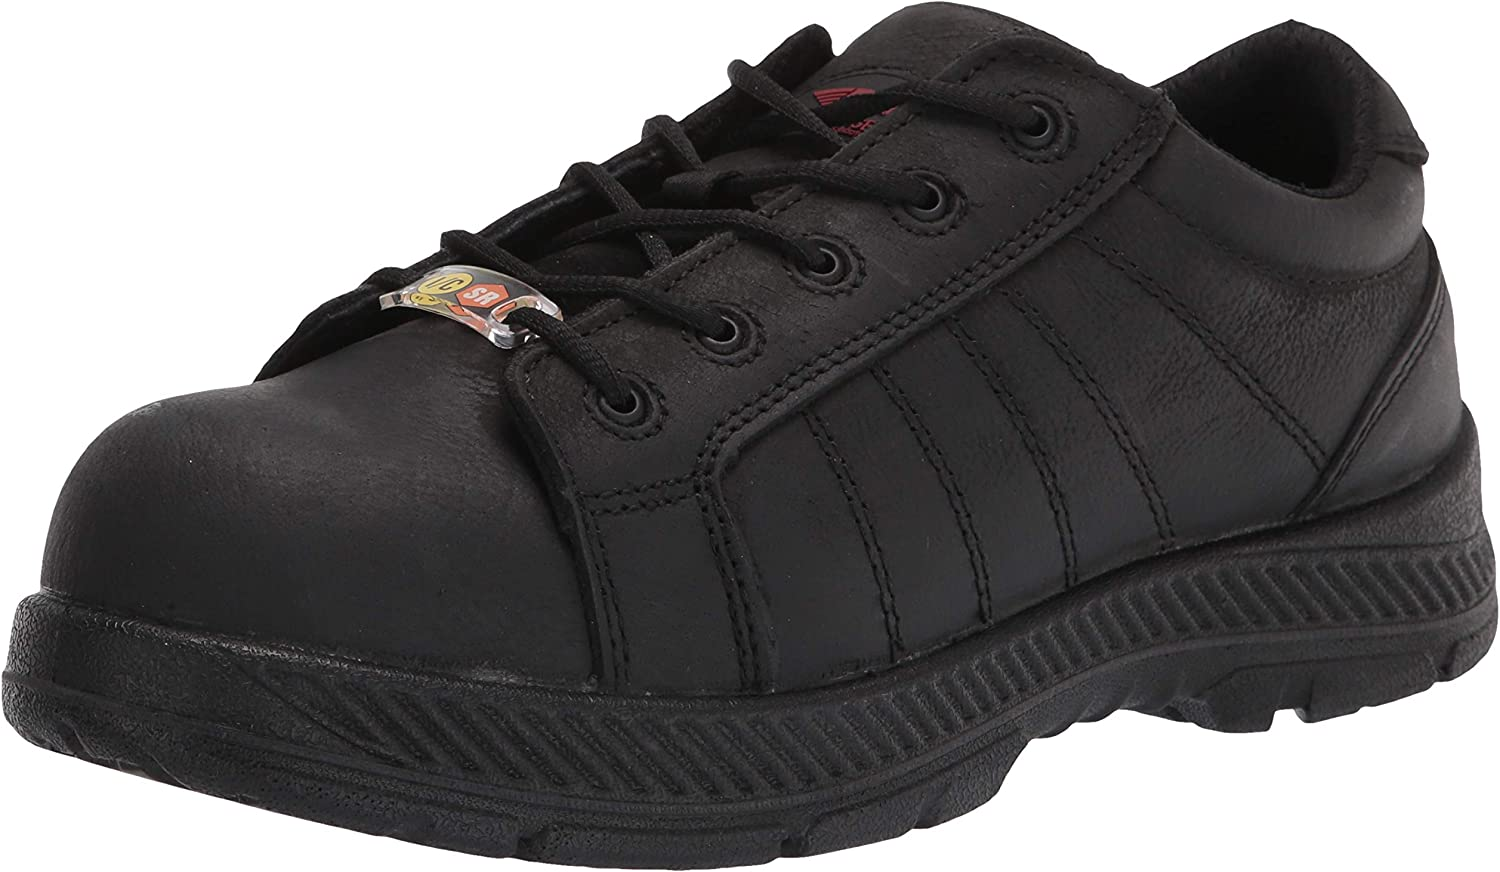 Avenger Work Boots A7232 Men's Safety Toe Shoes Oxford Quantity Ranking TOP3 limited 10.